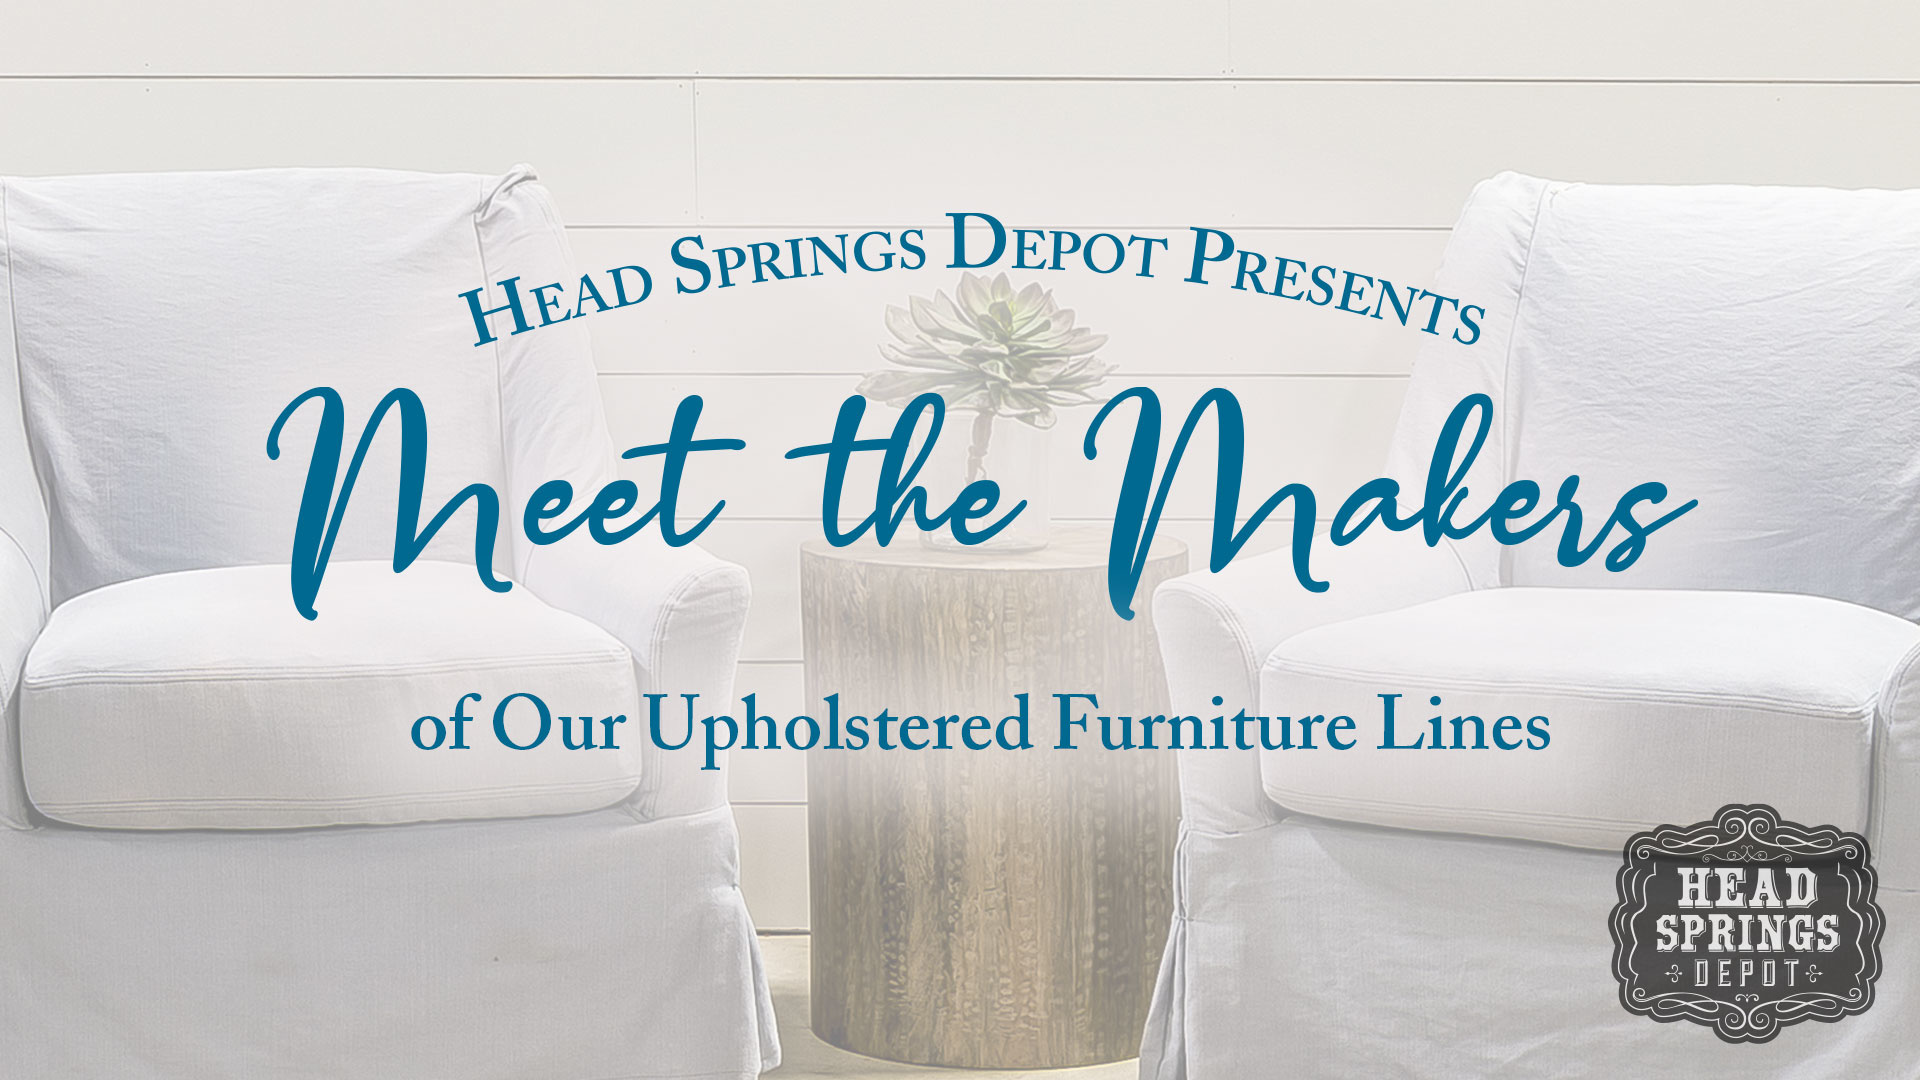 Meet the Makers of Our Upholstered Furniture Lines